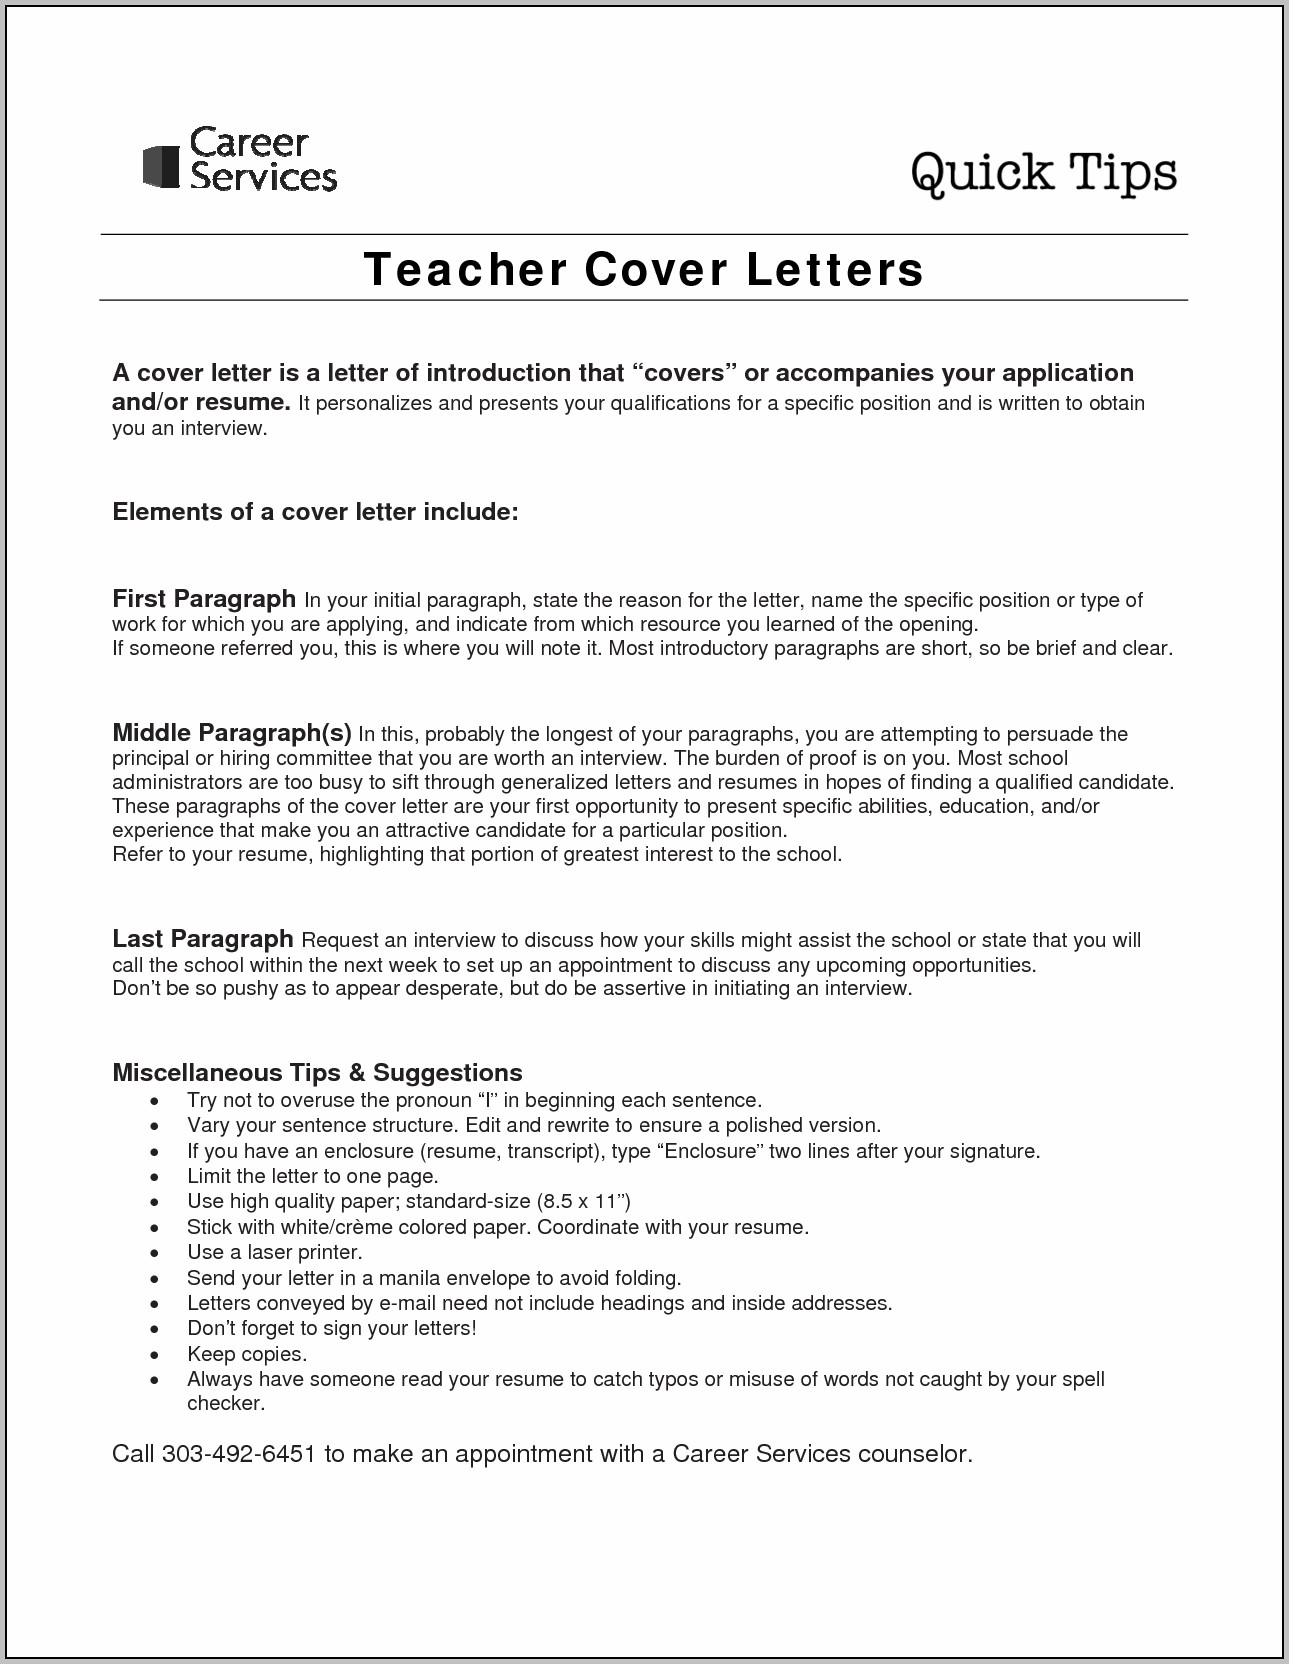 Sample Cover Letter For Secondary Teaching Position